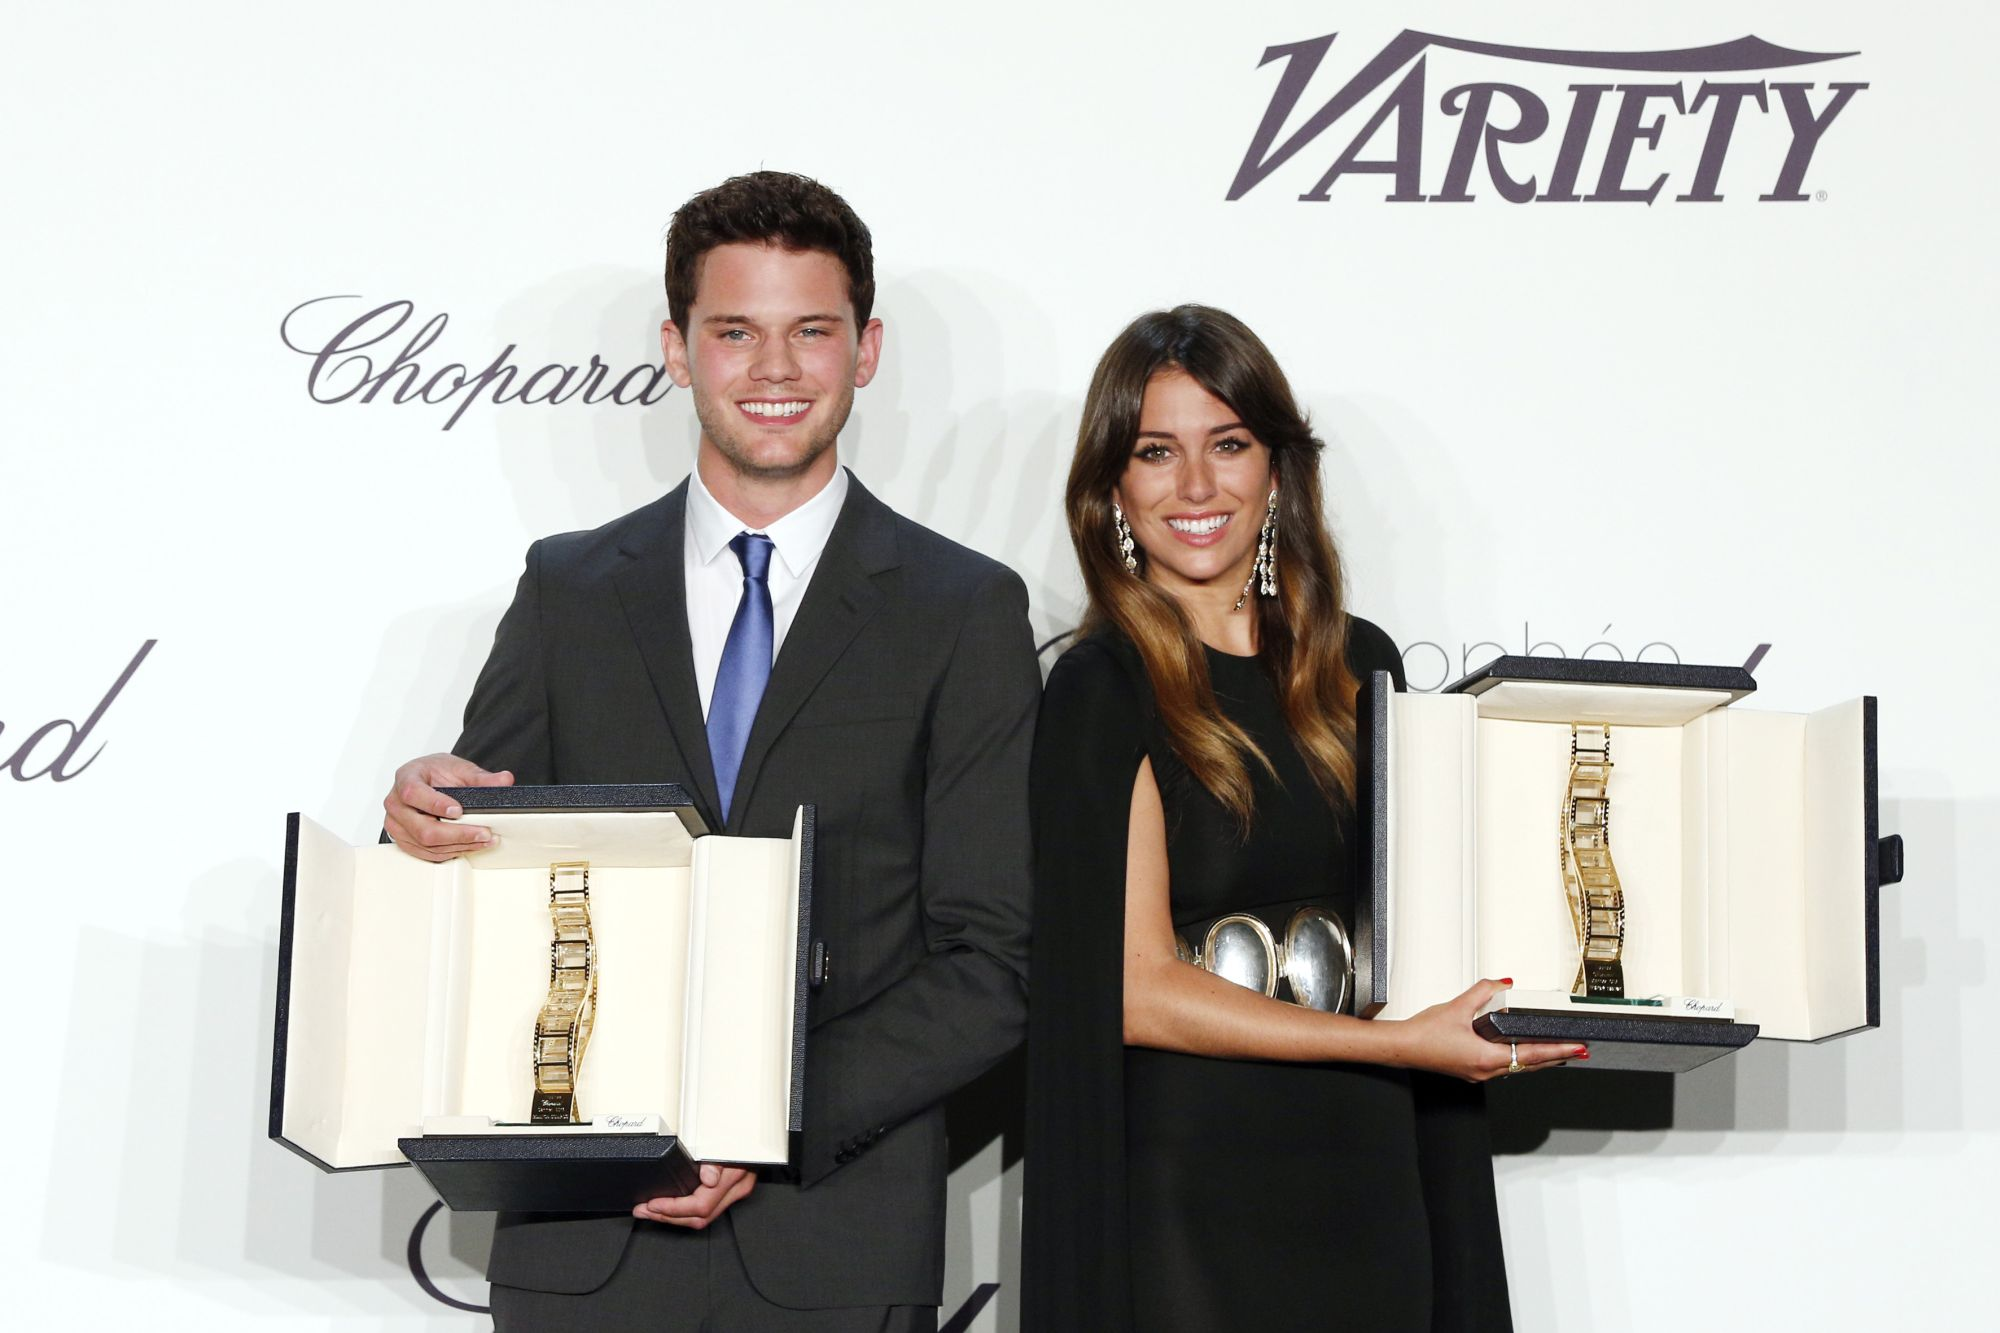 Jeremy_Irvine_and_Blanca_Suarez_in_Chopard_02 p